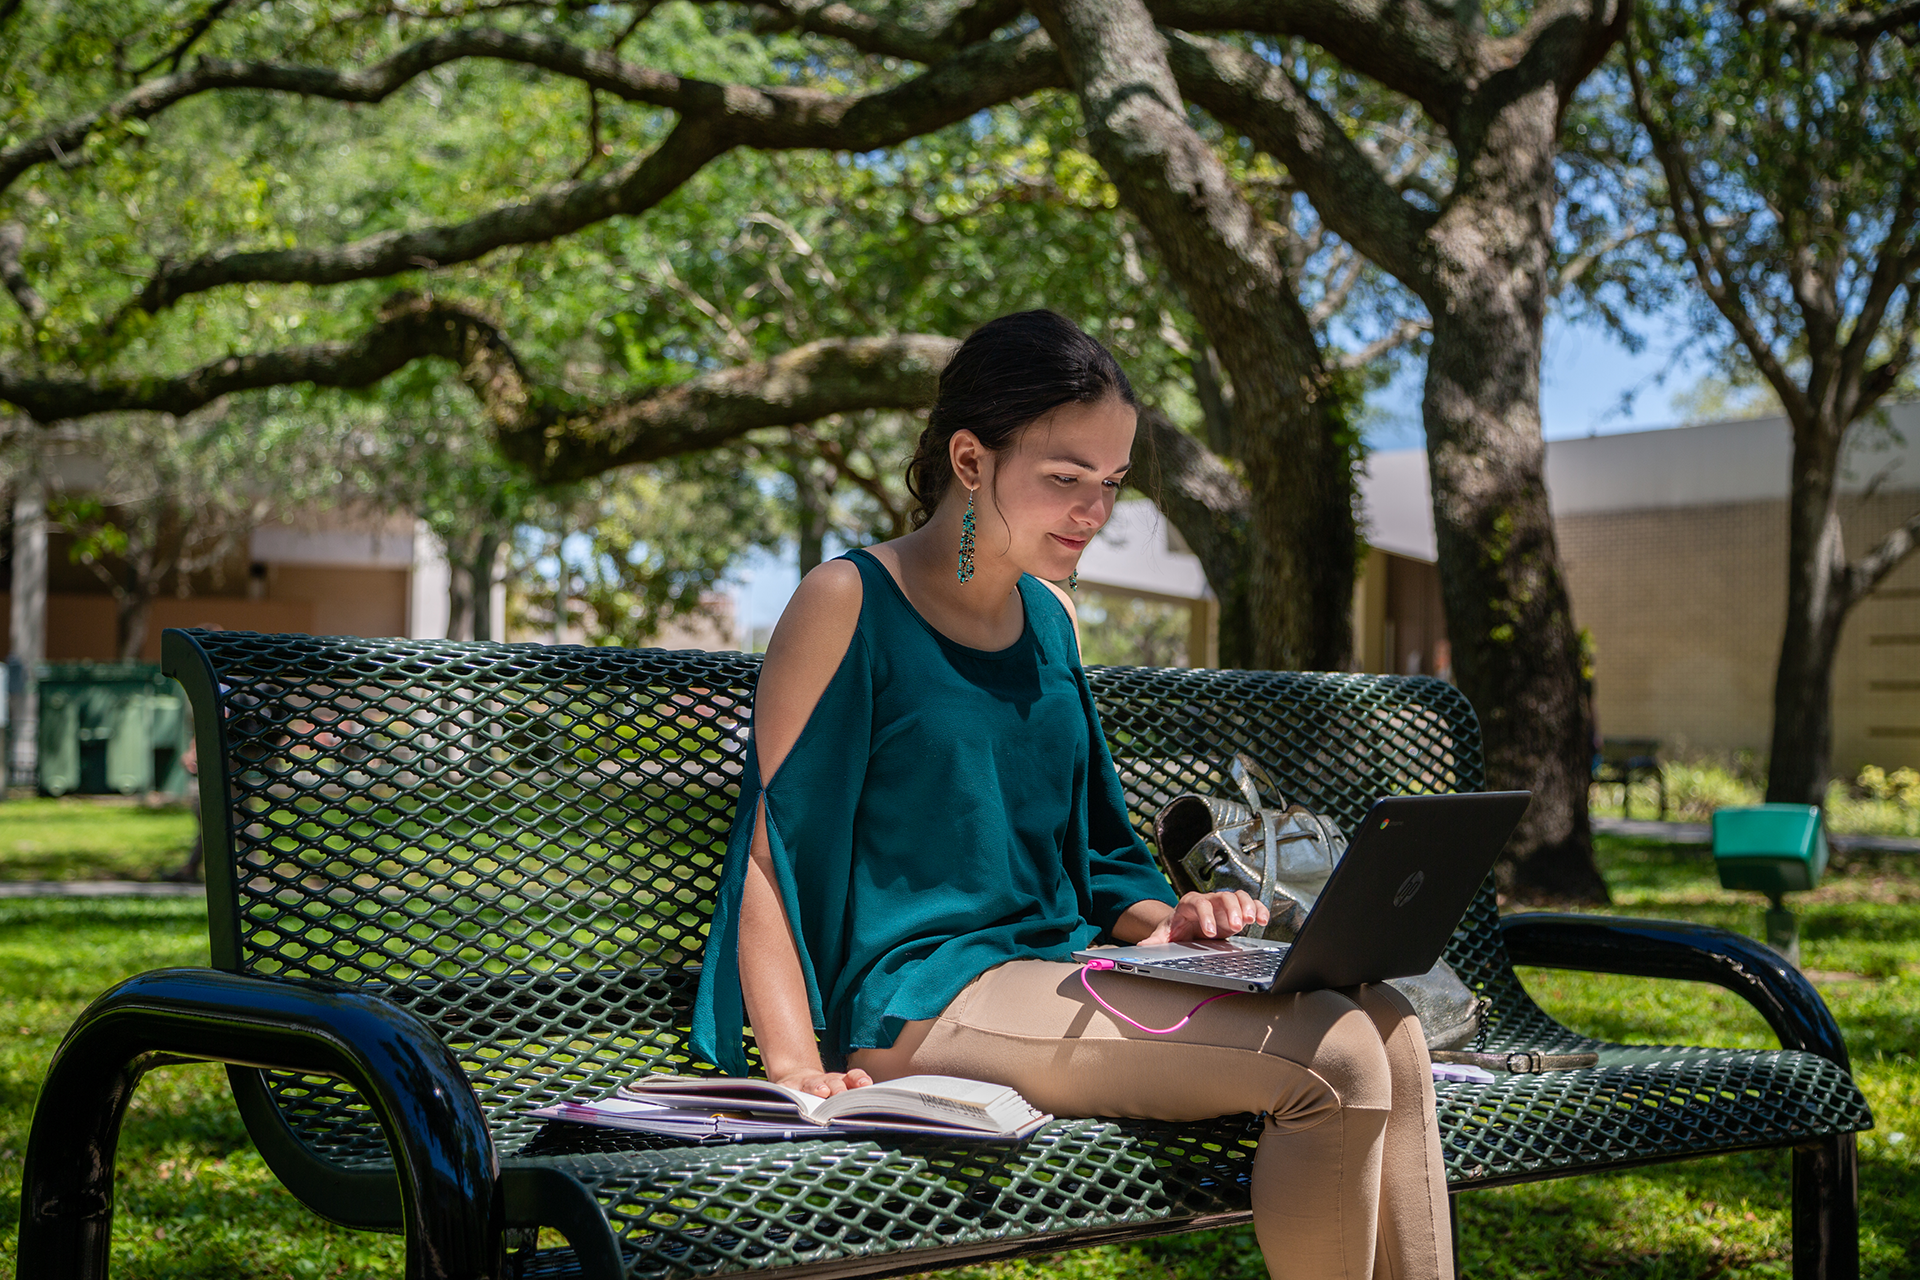 USF student researching USF deadlines on her laptop outside on campus.